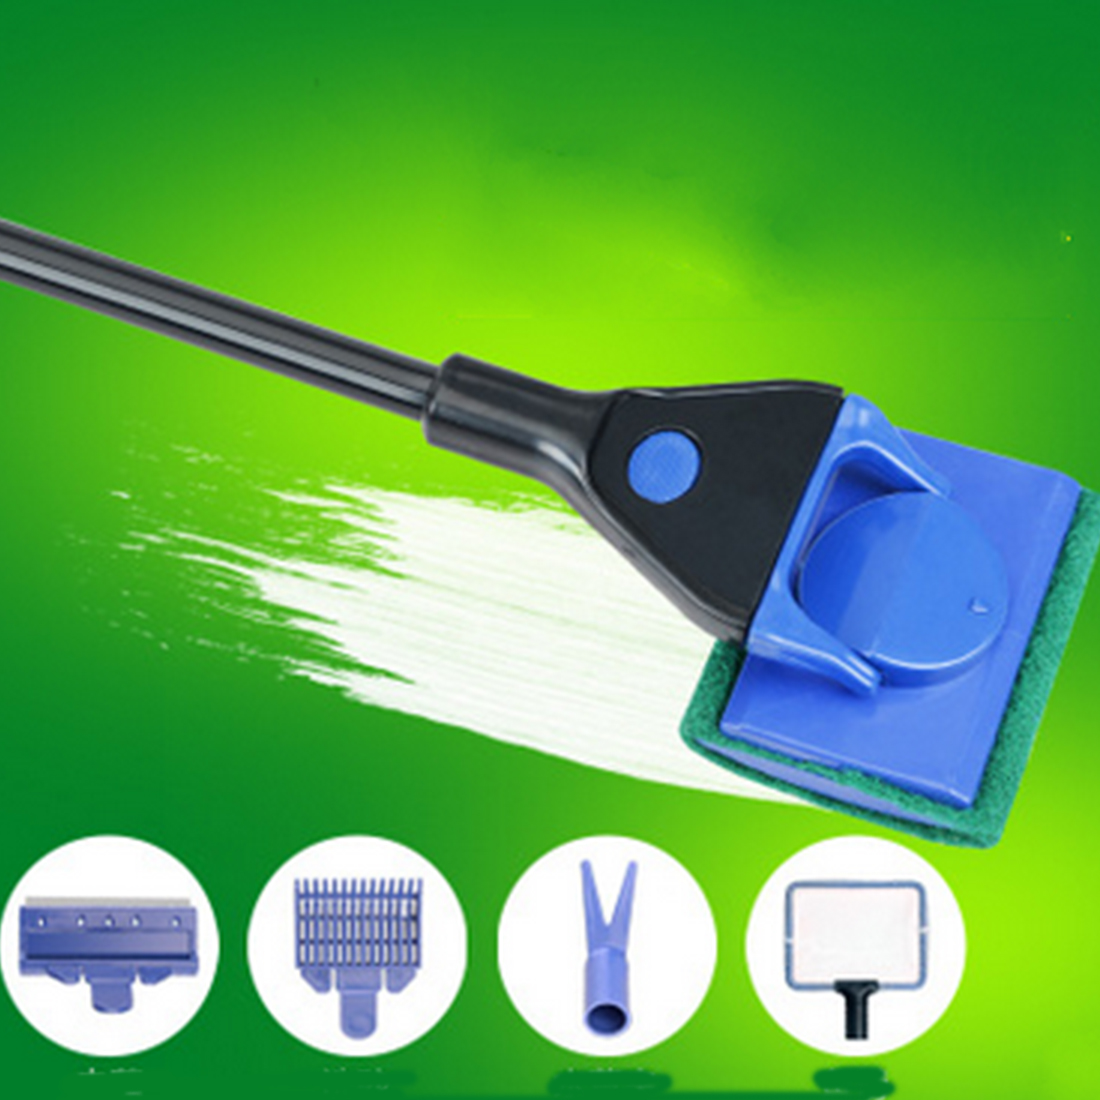 Fish aquarium glass cleaner - Useful 4in1 5in1 Aquarium Glass Cleaner Tool Kit Gravel Fork Net Sponge Fish Tank Fishing Algae